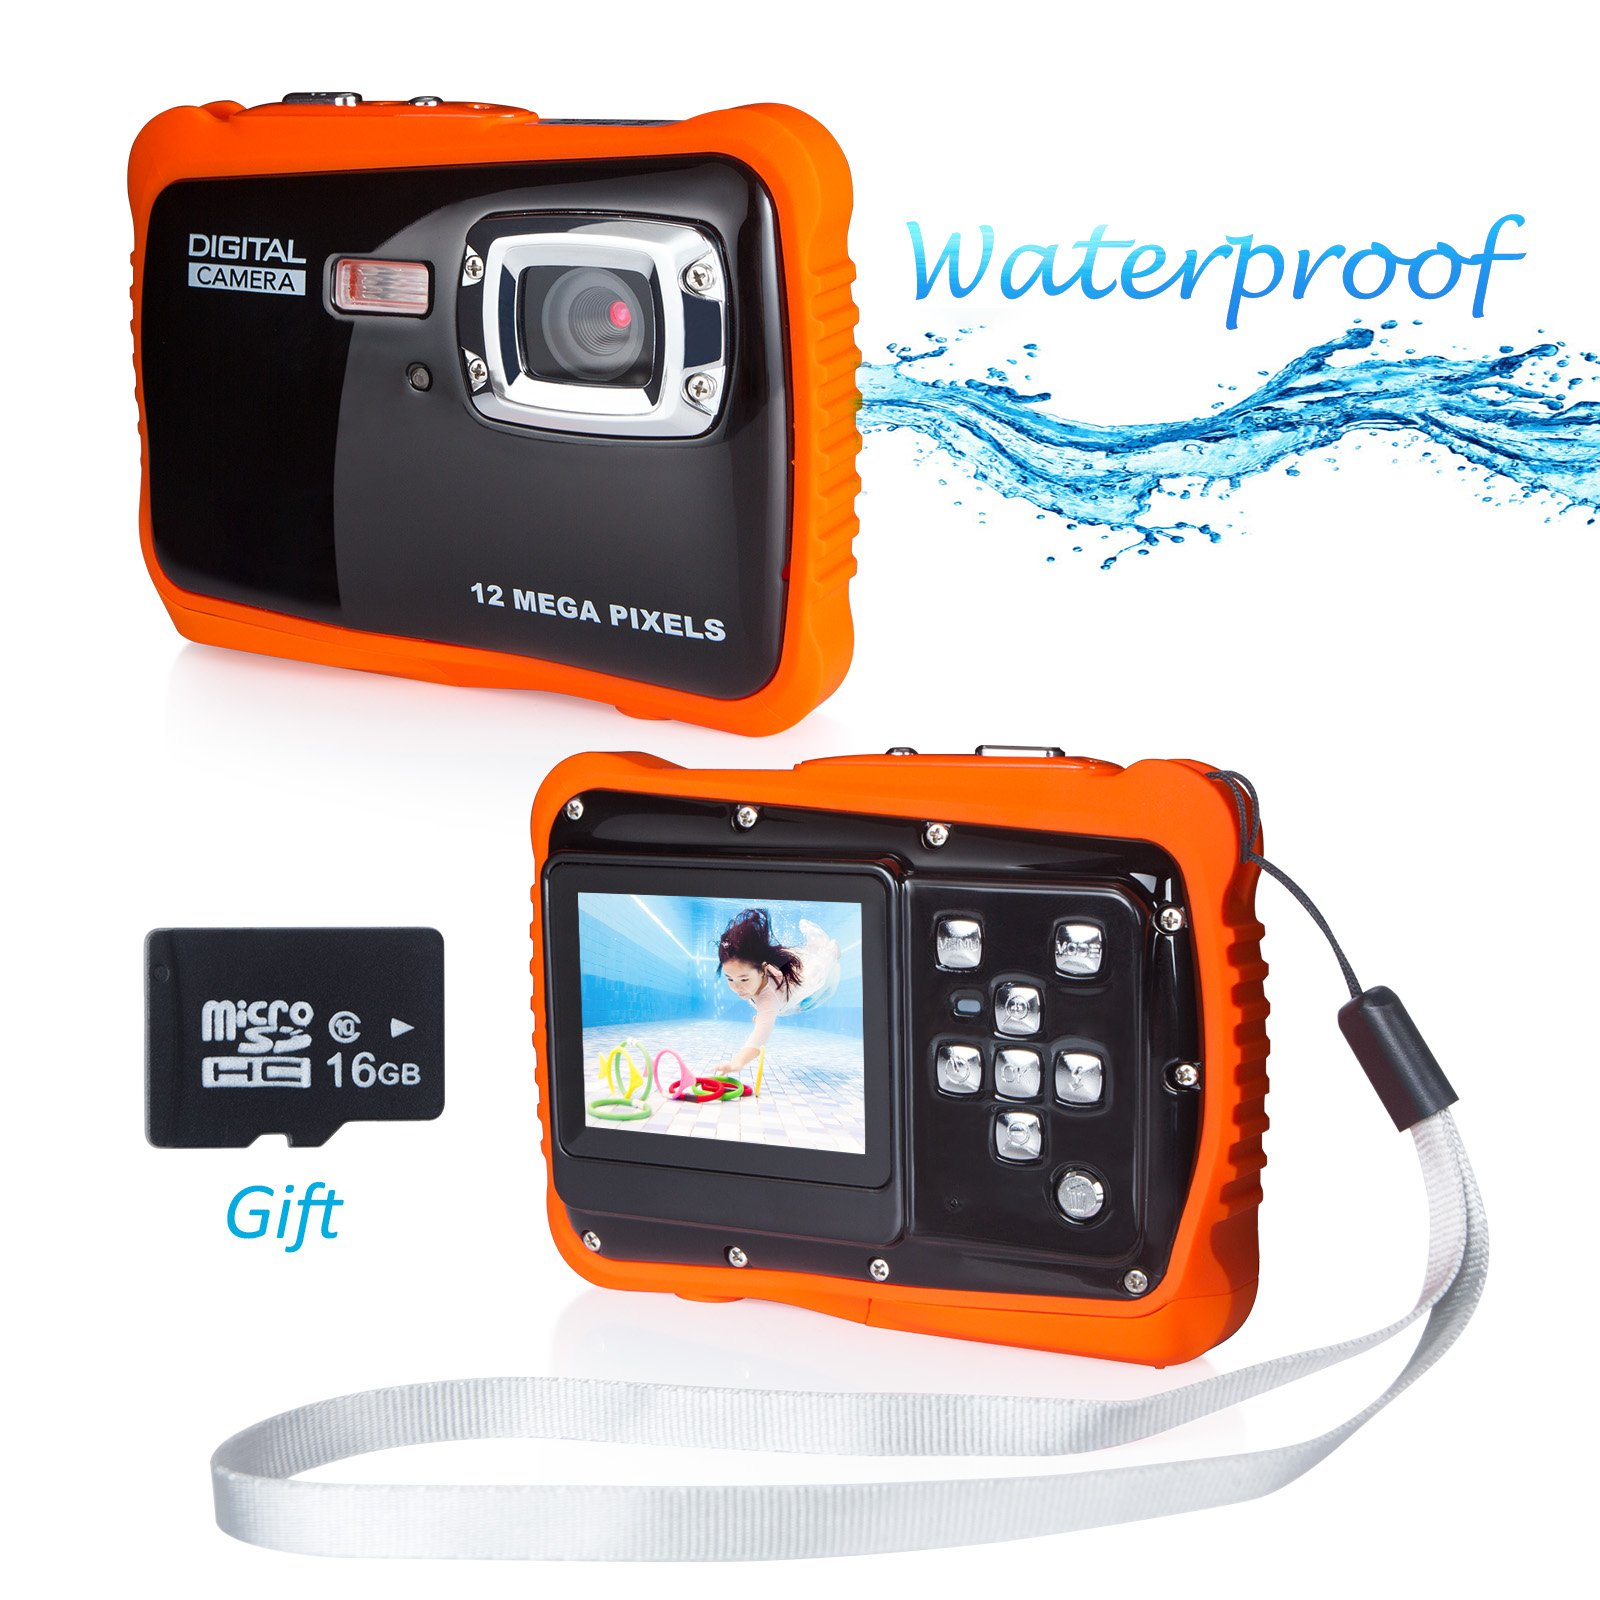 Waterproof Digital Camera, FLAGPOWER 5MP CMOS Sensor/ 12MP HD Potos/720P HD Video function Underwater Action Camera Camcorder with 16G SD card 2.0'' Color LCD Display Flash and Mic